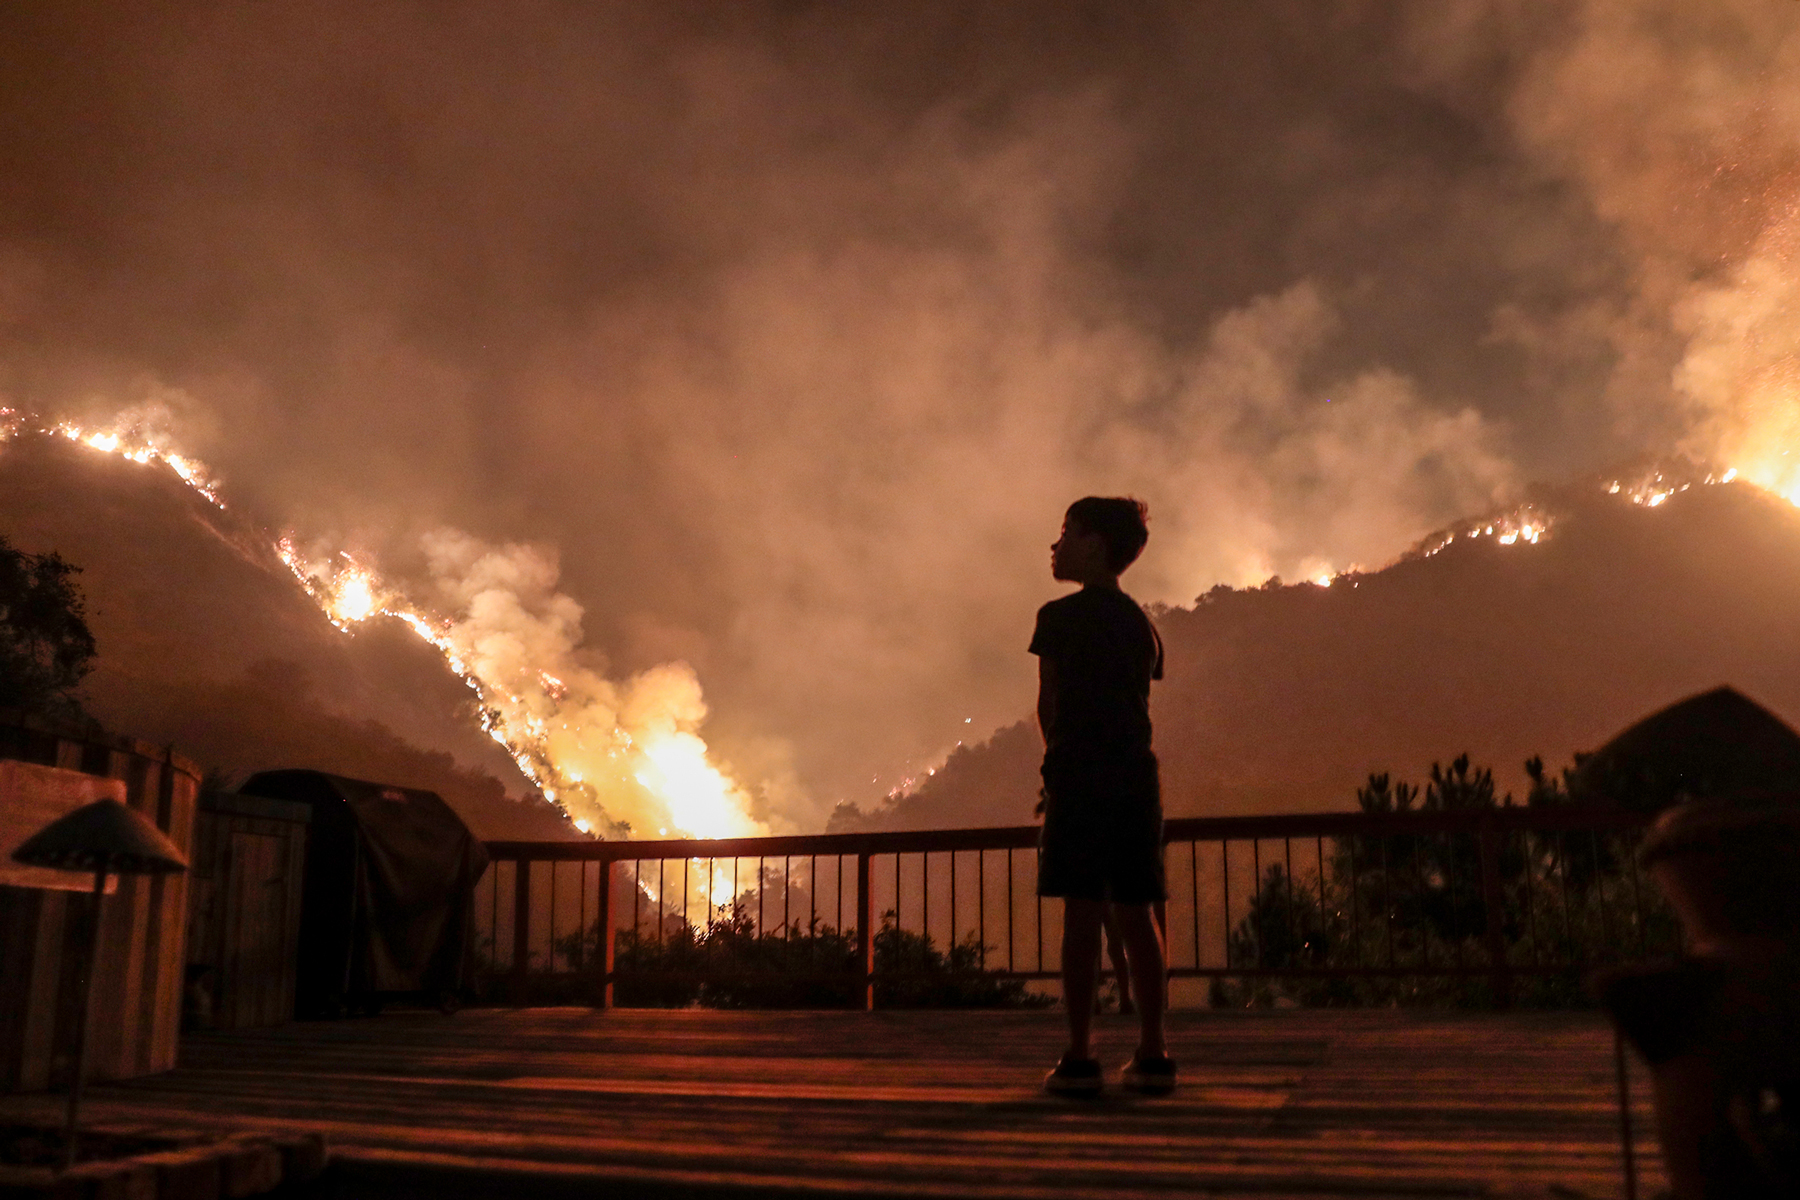 Monrovia, CA, September 15, 2020 - Castle Snider, 8, looks on as flames engulf the hillsides behind his backyard as the Bobcat Fire burns near homes on Oakglade Dr.  (Robert Gauthier/ Los Angeles Times via Getty Images)